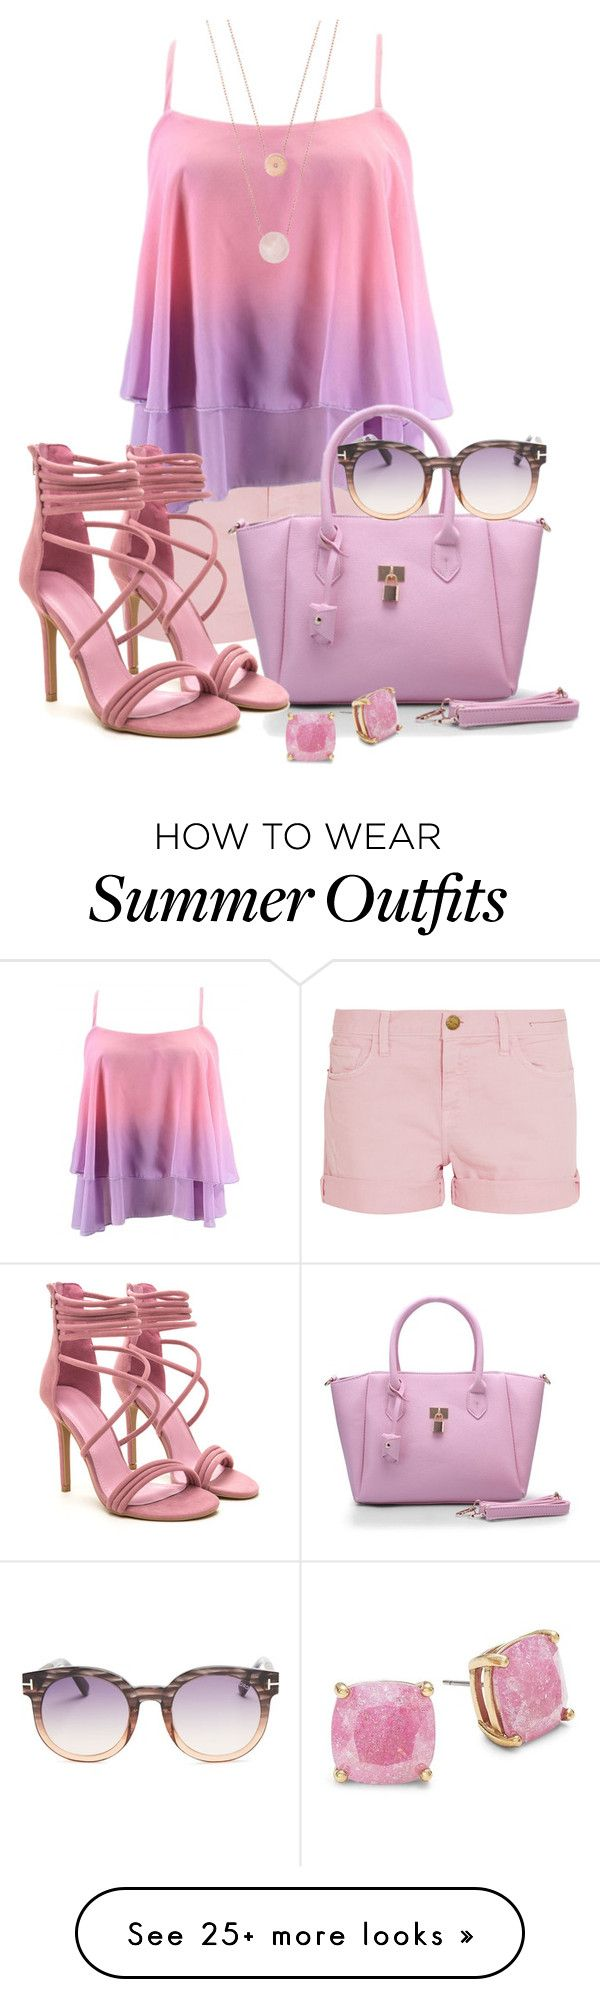 """--------"" by elona-makavelli on Polyvore featuring Current/Elliott, M..."